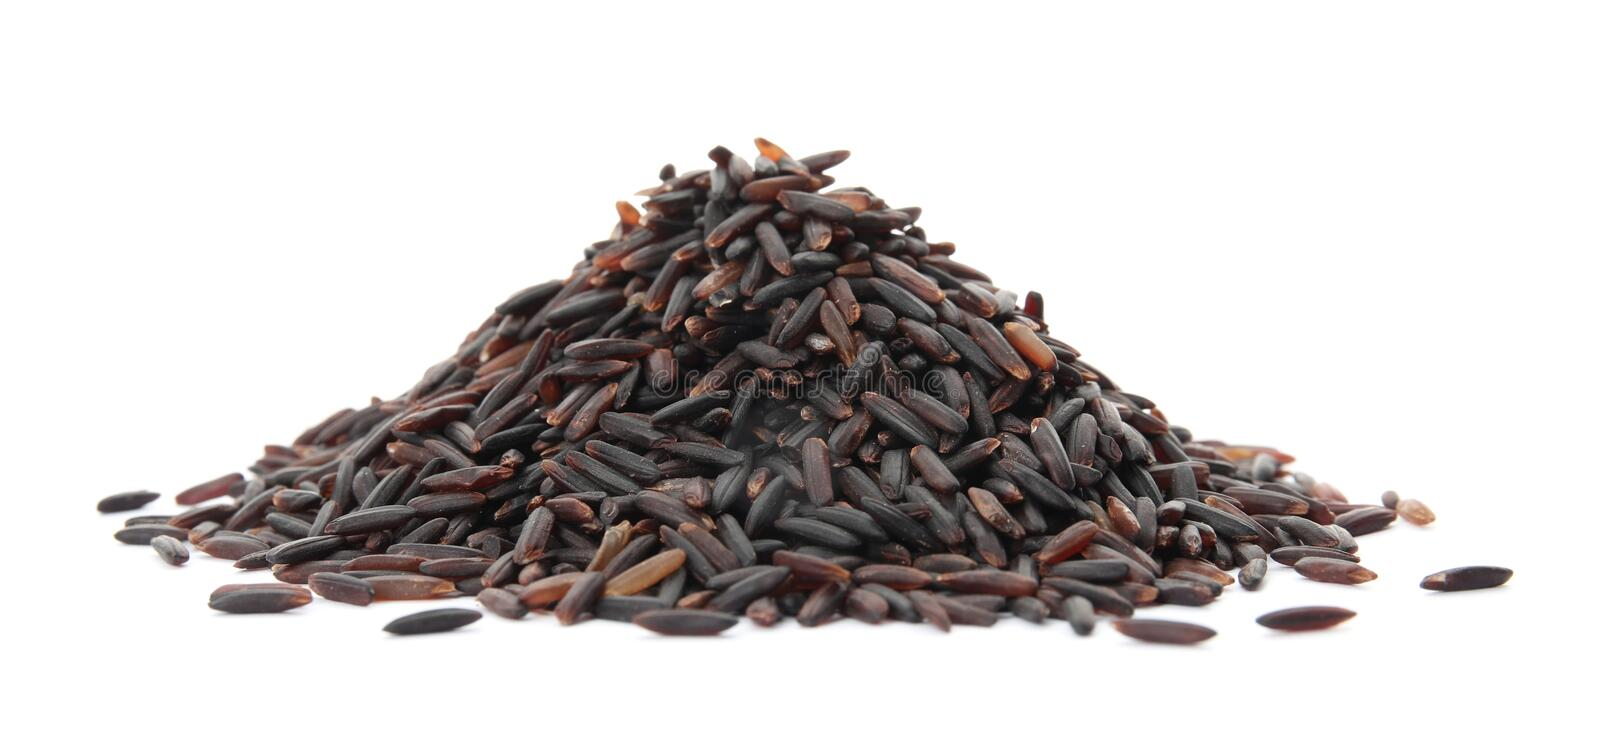 Pile of uncooked black rice stock photo